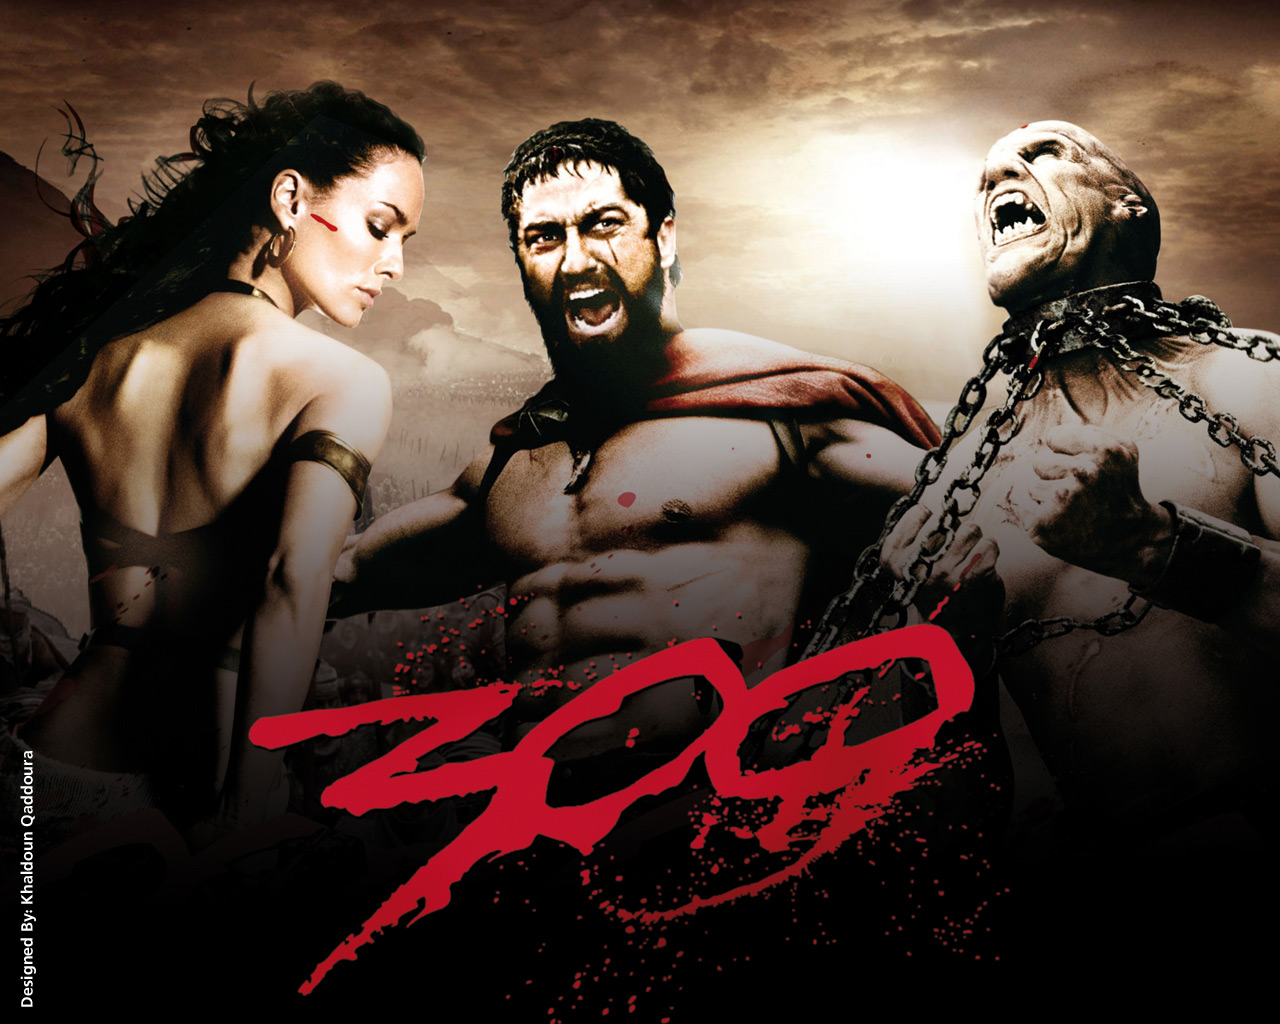 Hindi Movie Wallpapers With Quotes Pediapie Posters Of Spartans Movie 300